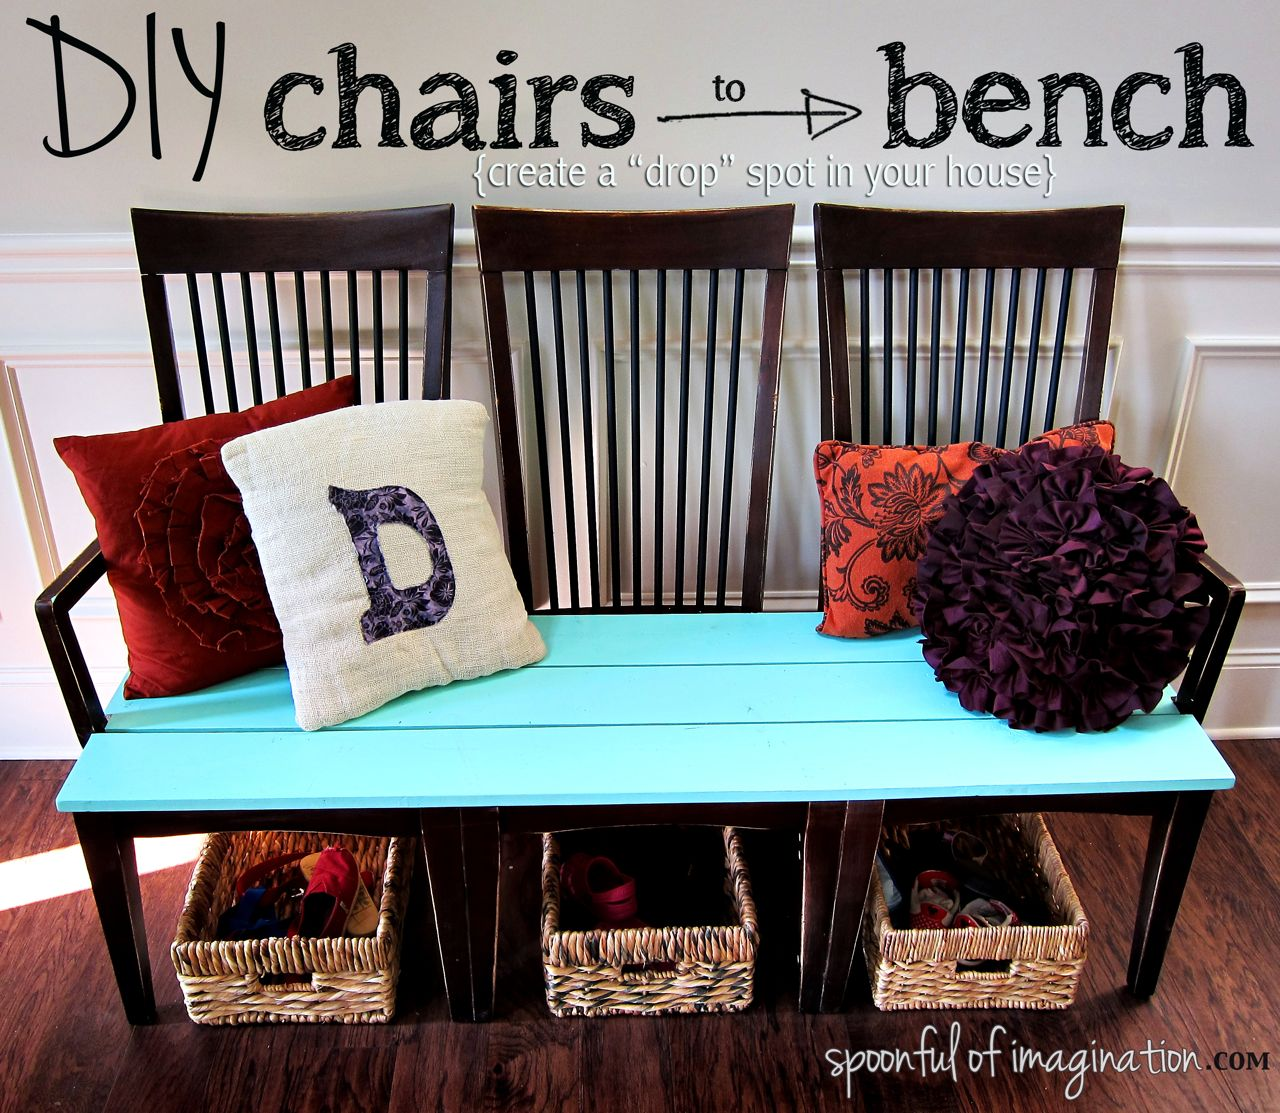 DIY-chairs-to-bench-makeover